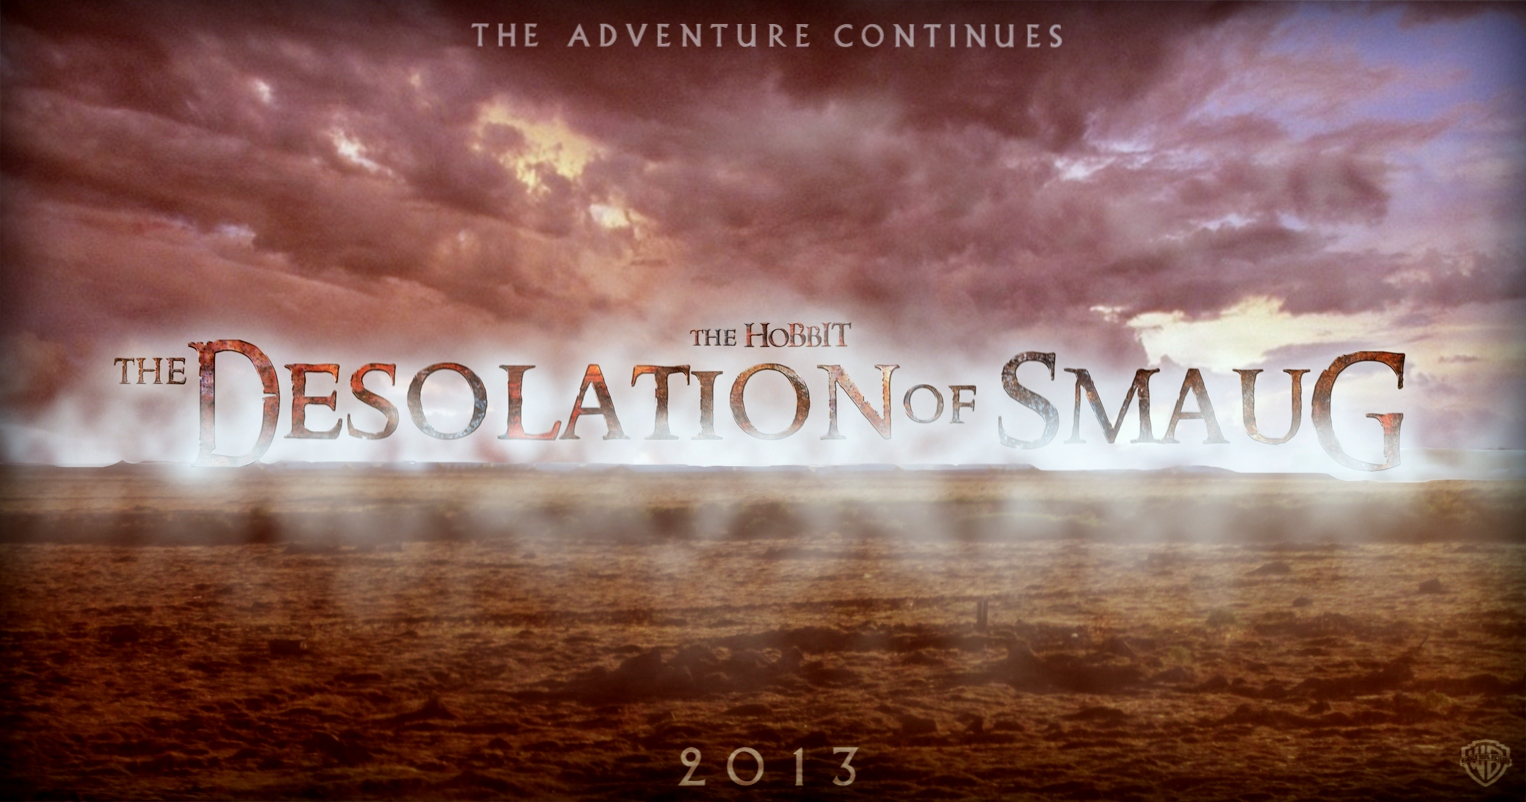 Full Movie)) Watch The Hobbit: The Desolation of Smaug Online Free